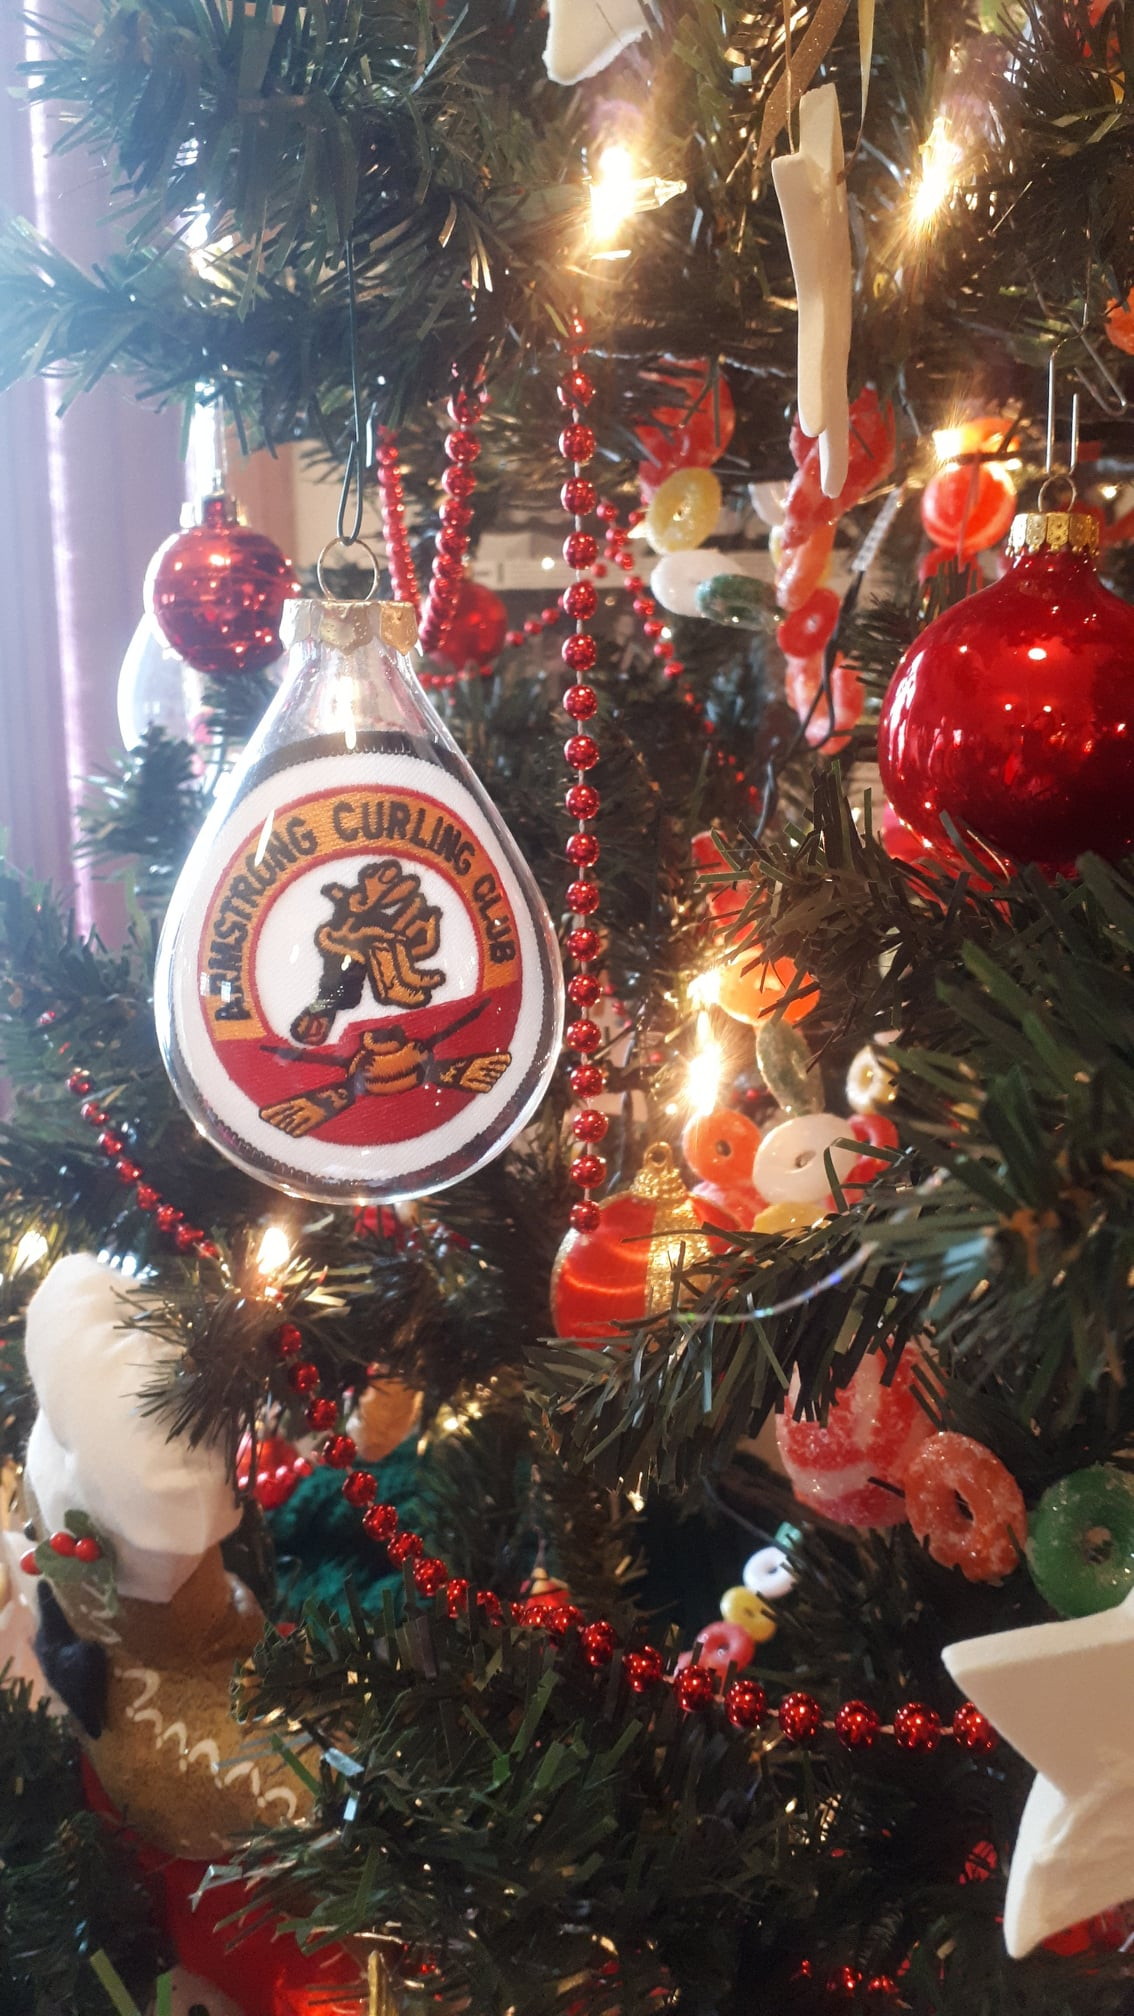 Armstrong Curling Club is having Christmas Without Curling because of Covid